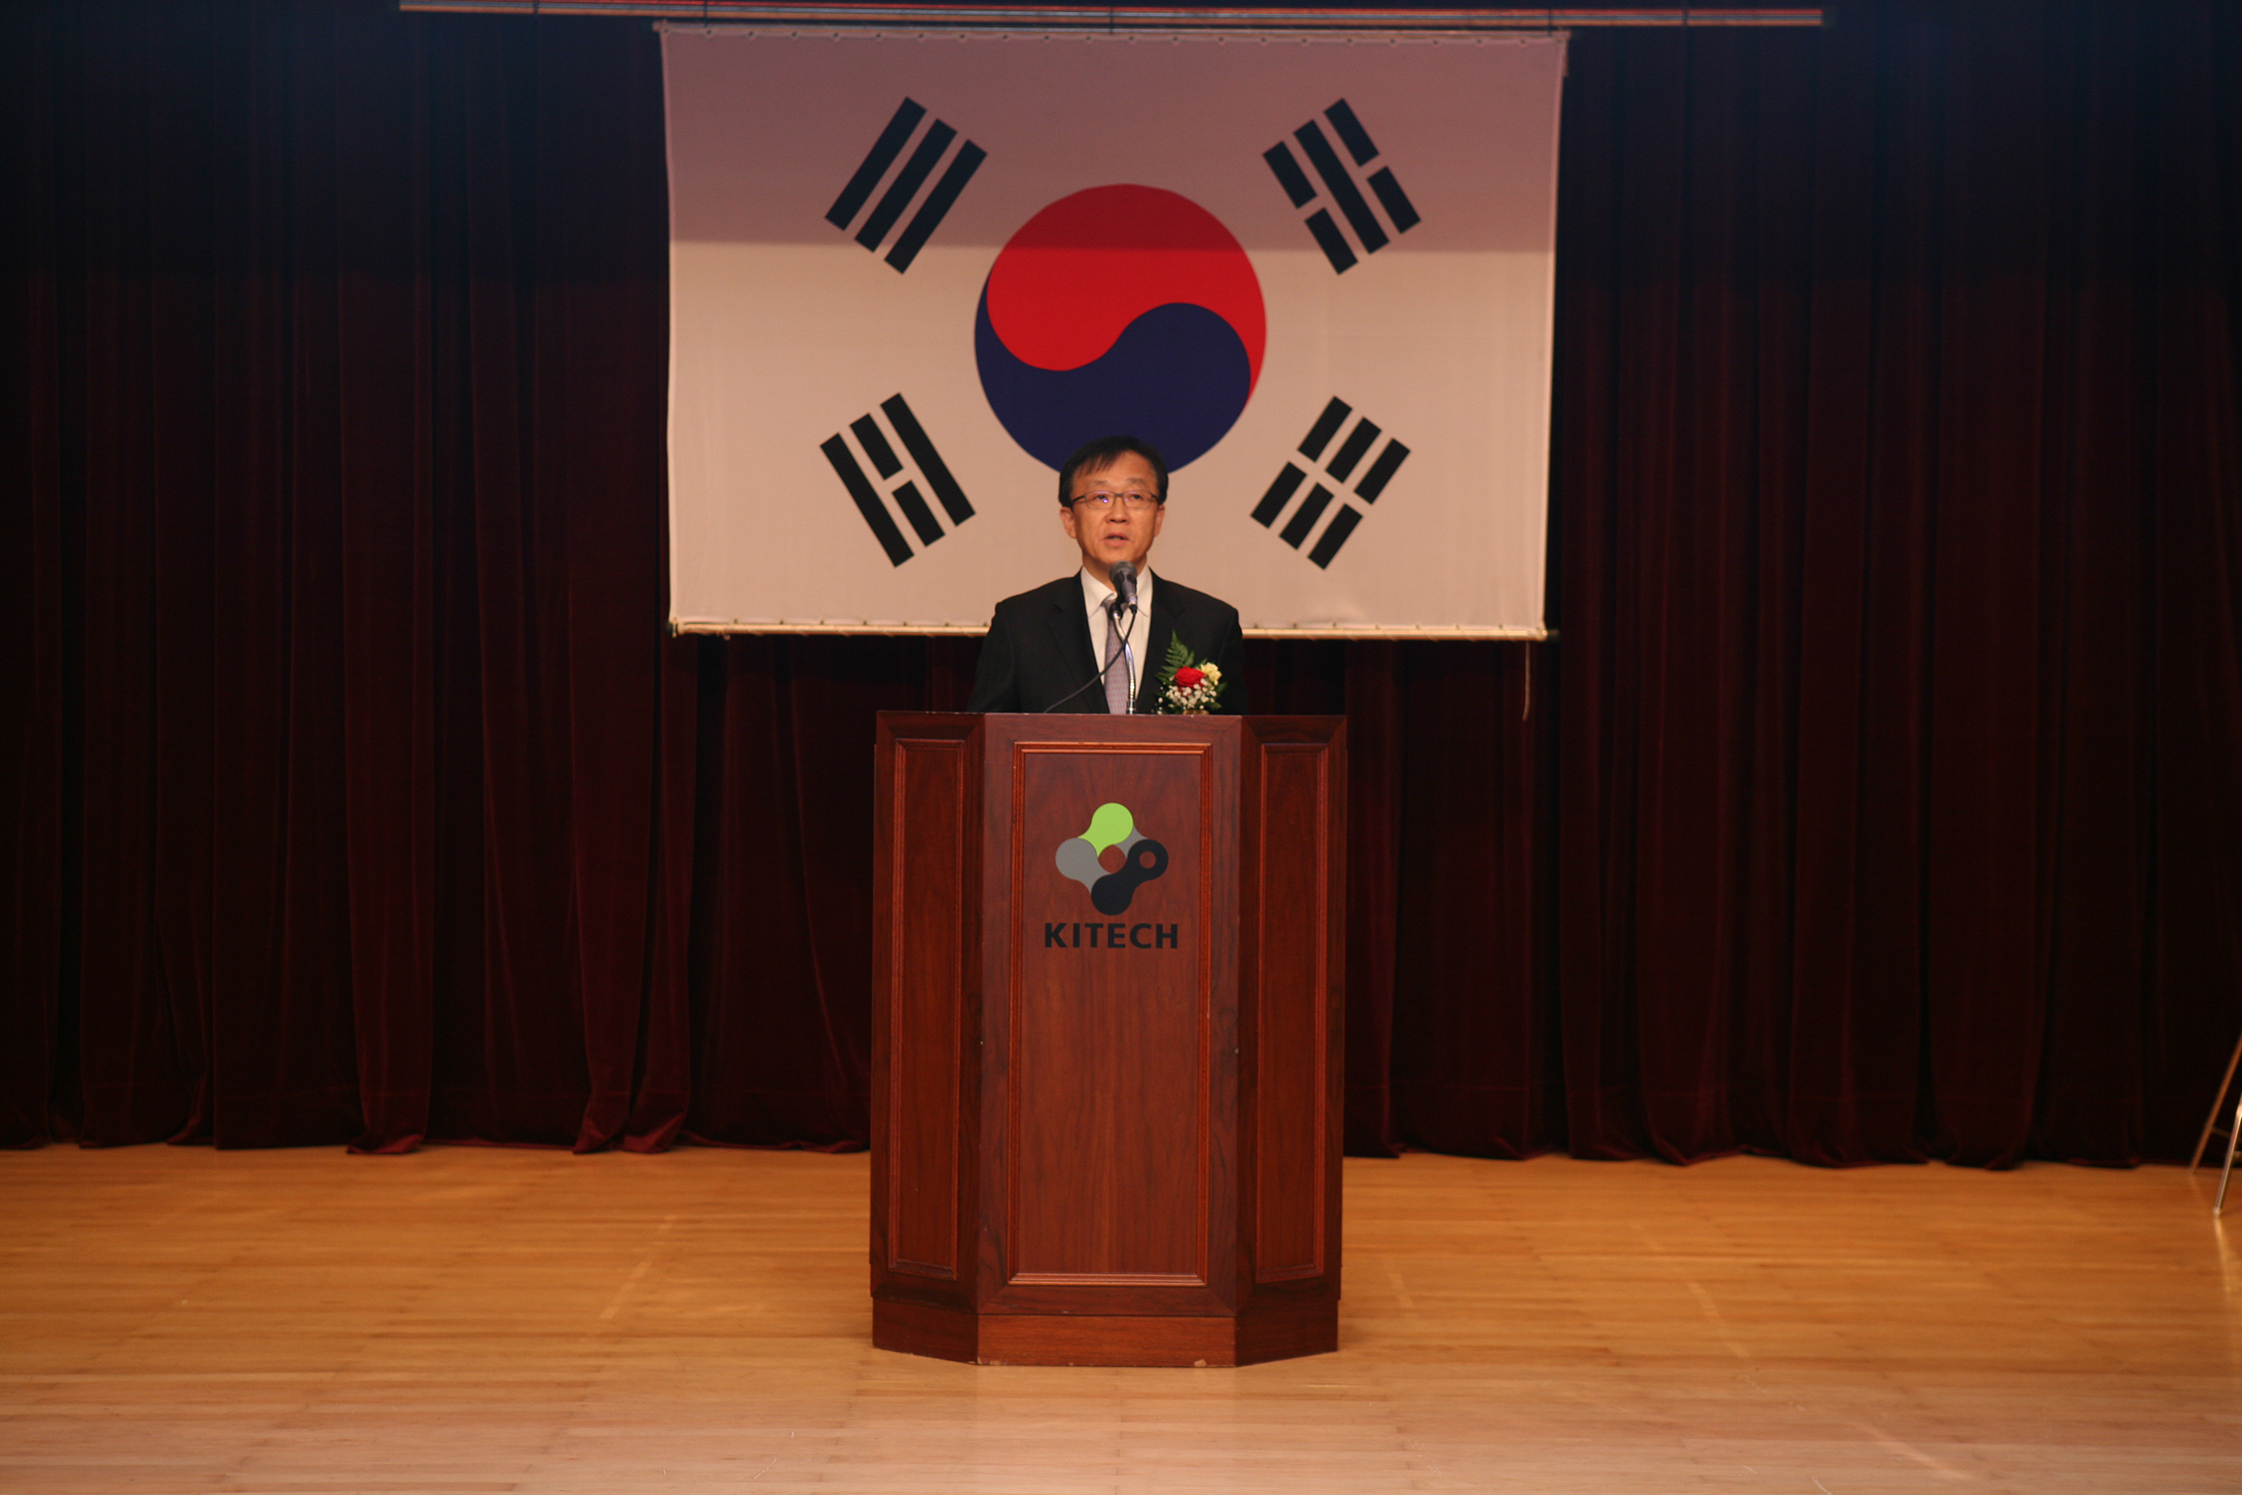 Korea Institute of Industrial Technology gets a new leader